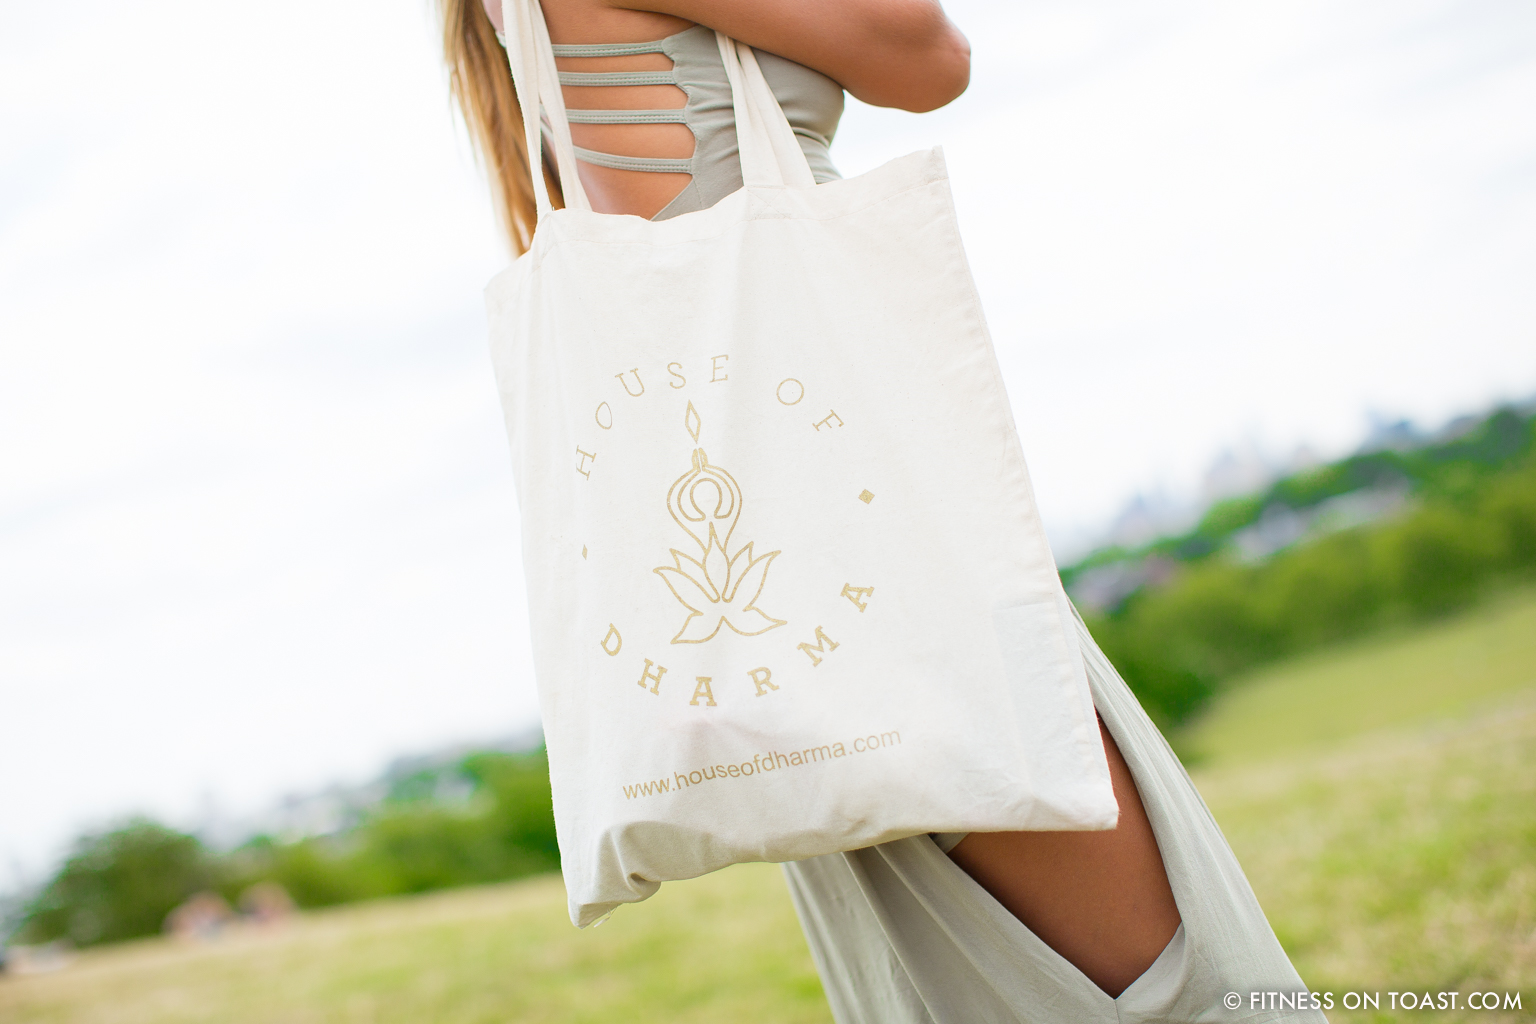 Fitness On Toast Faya Blog Girl Healthy Workout Yoga Lifestyle Fashion OOTD House of Dharma Kayleigh Carrie Bali Clothes Bohemian Look Primrose Hill London-11